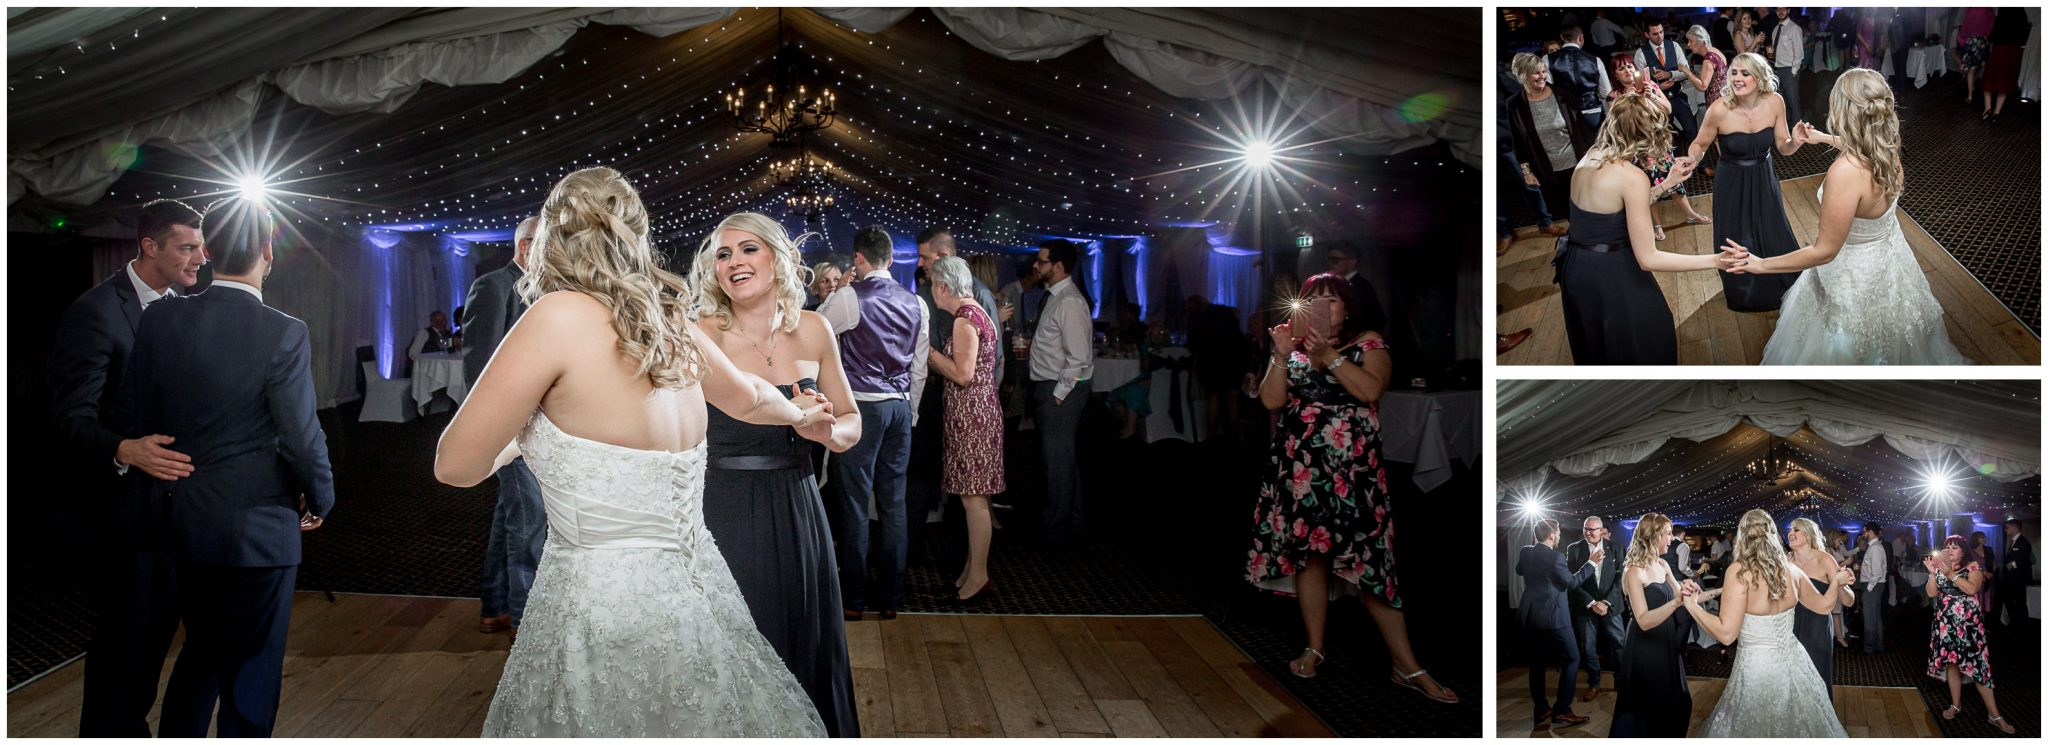 Audleys Wood wedding photograhy evening party